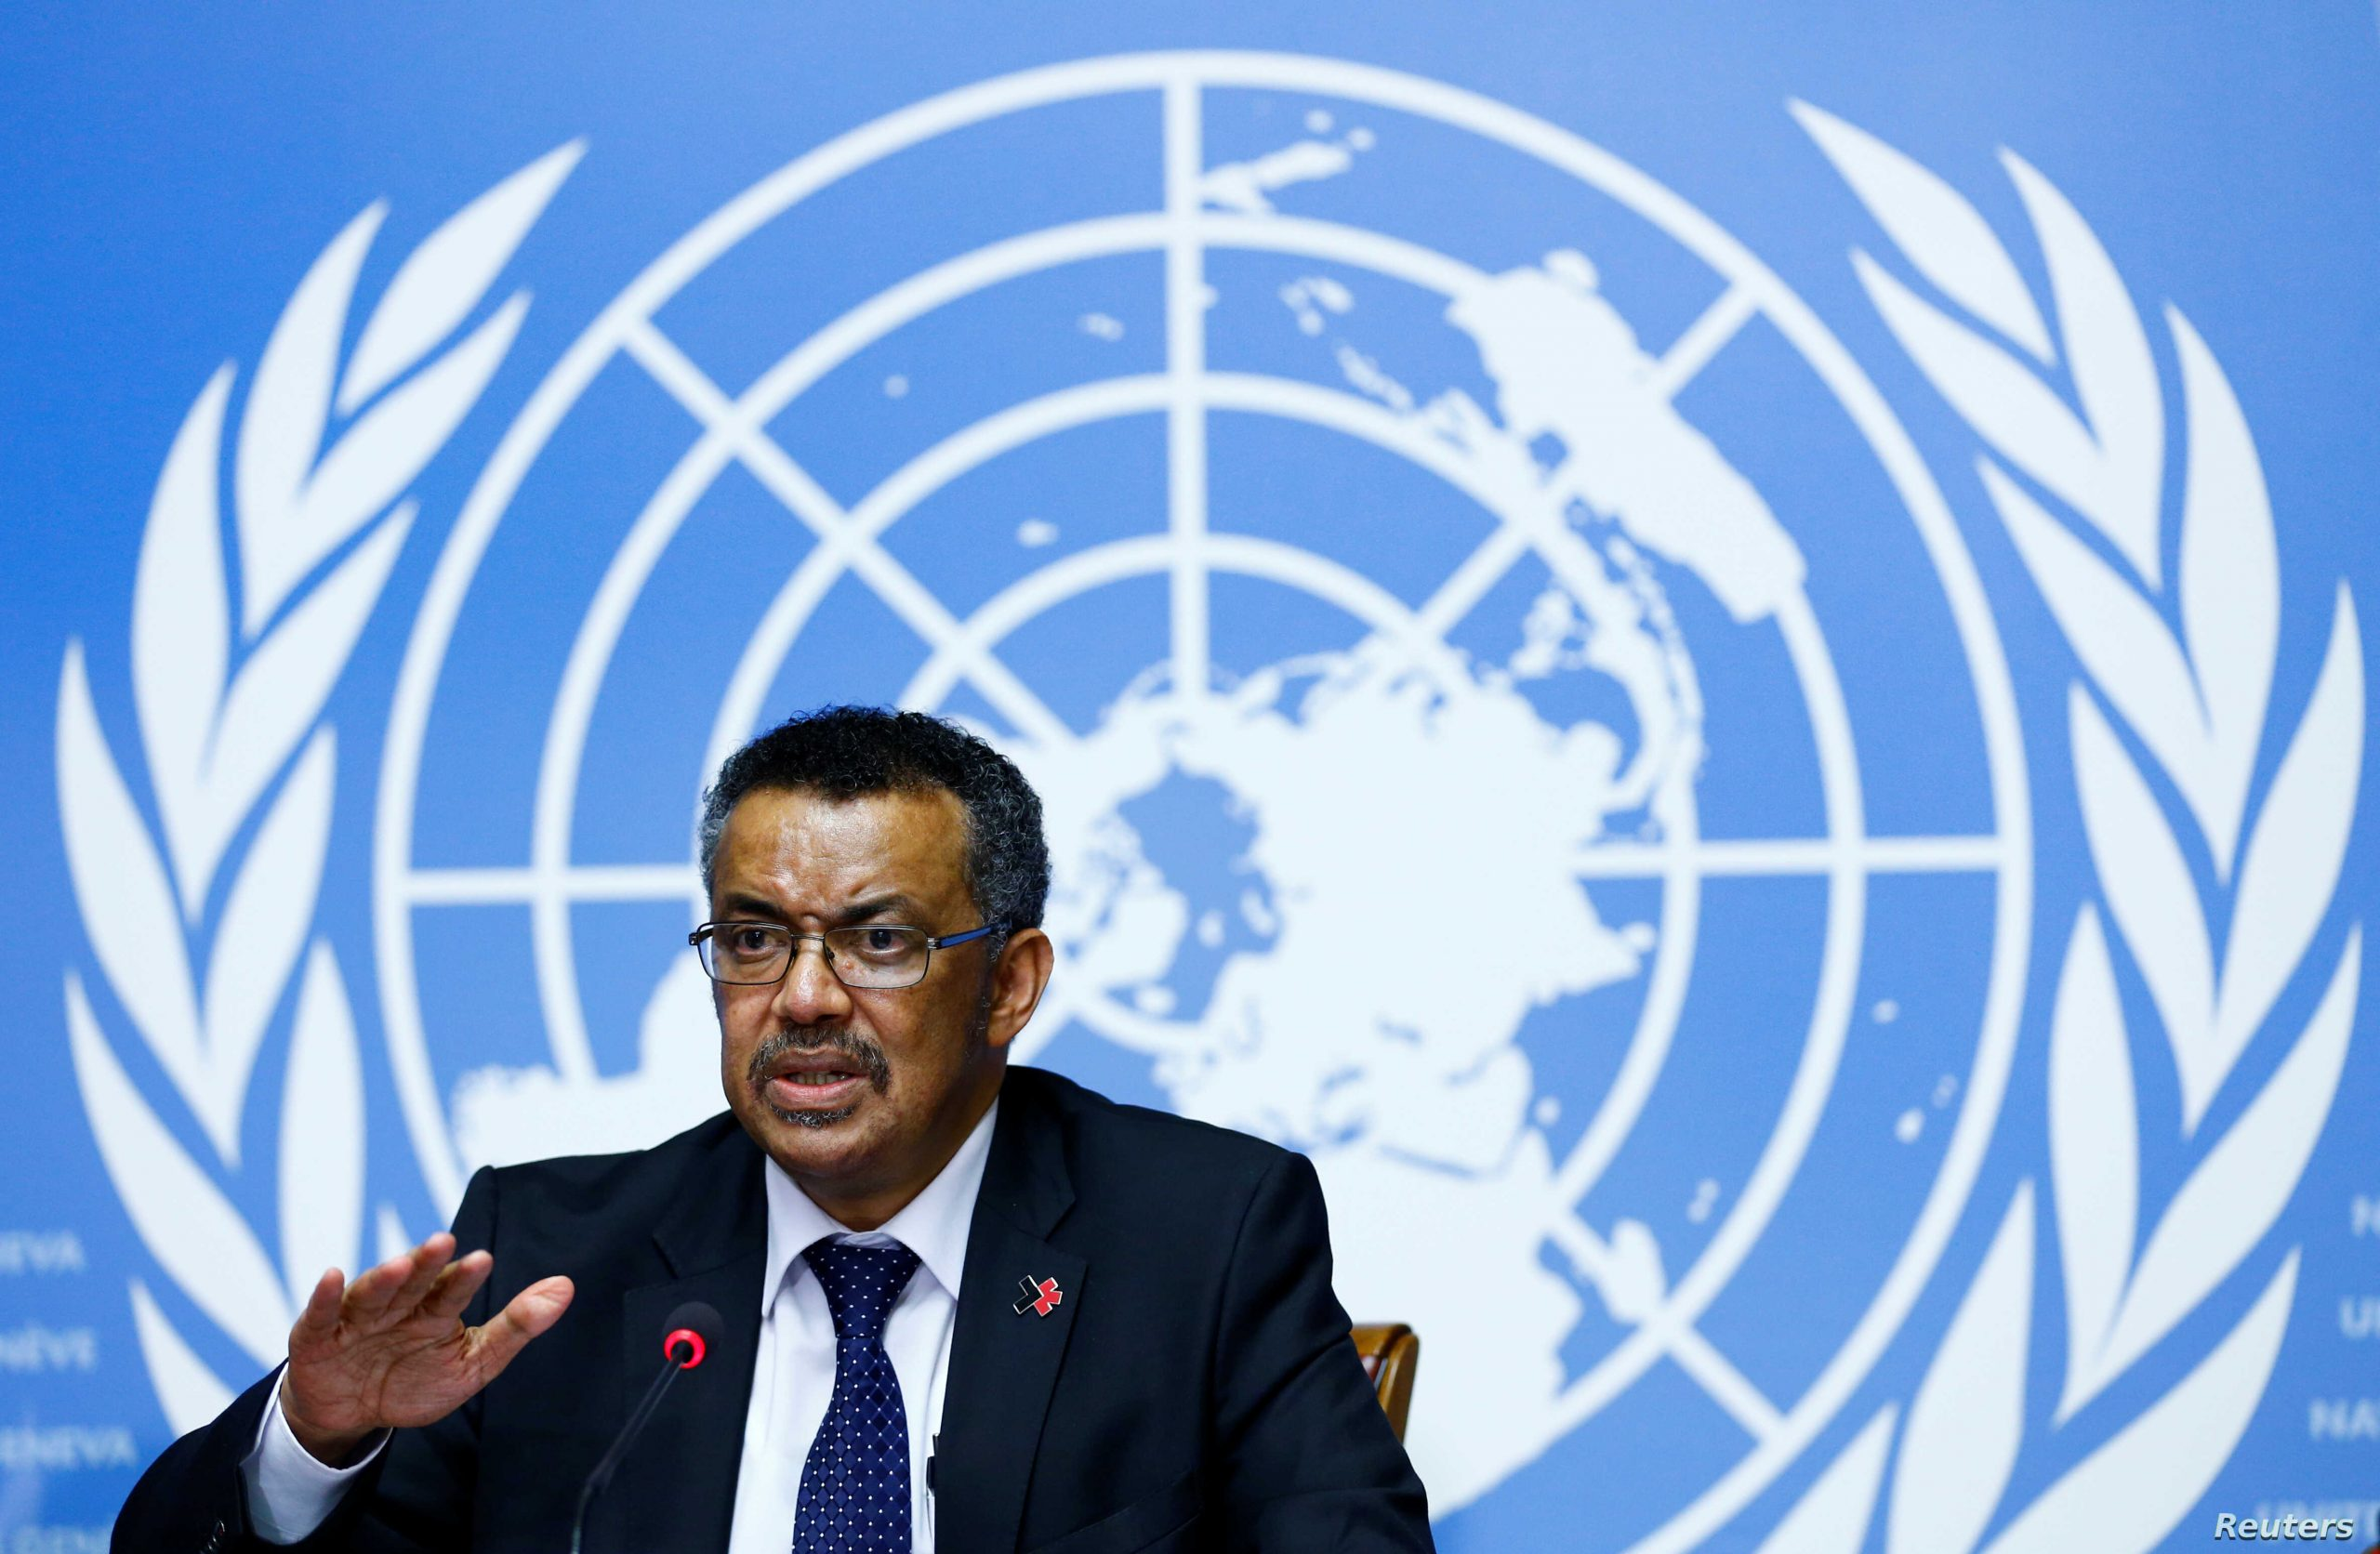 Newly elected Director-General of the WHO Tedros attends a news conference at the United Nations in Geneva